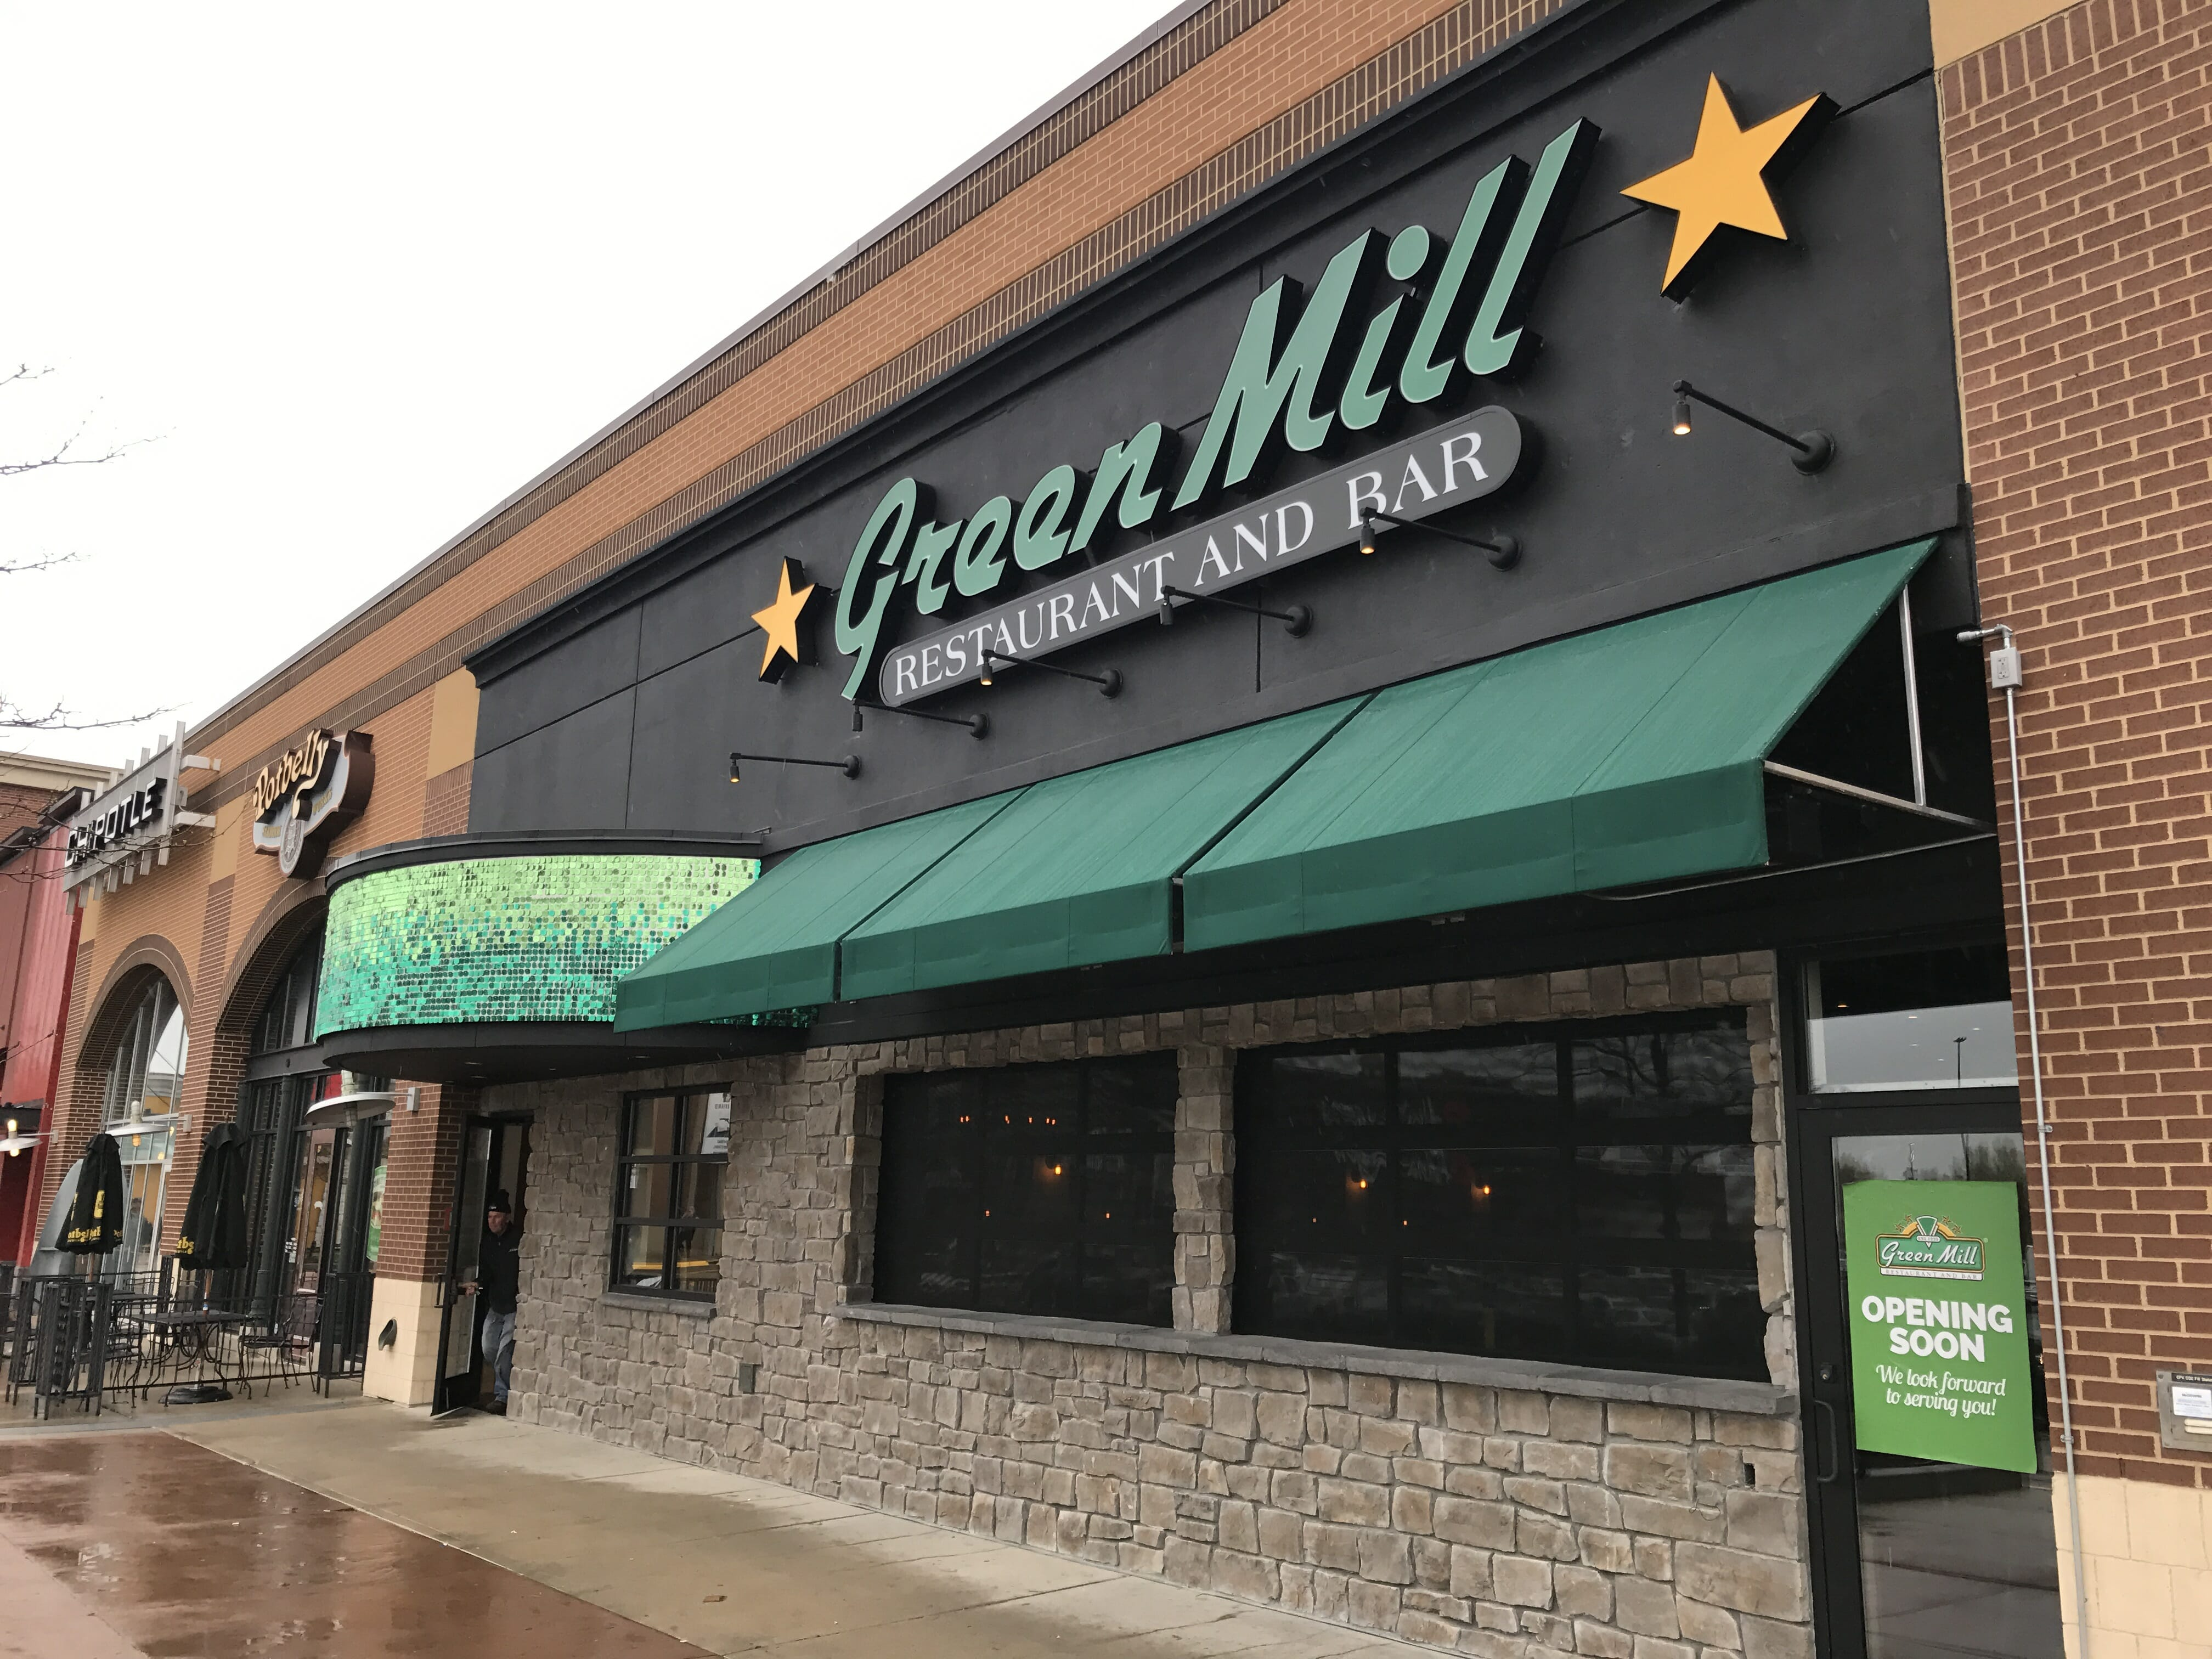 Green Mill Roseville